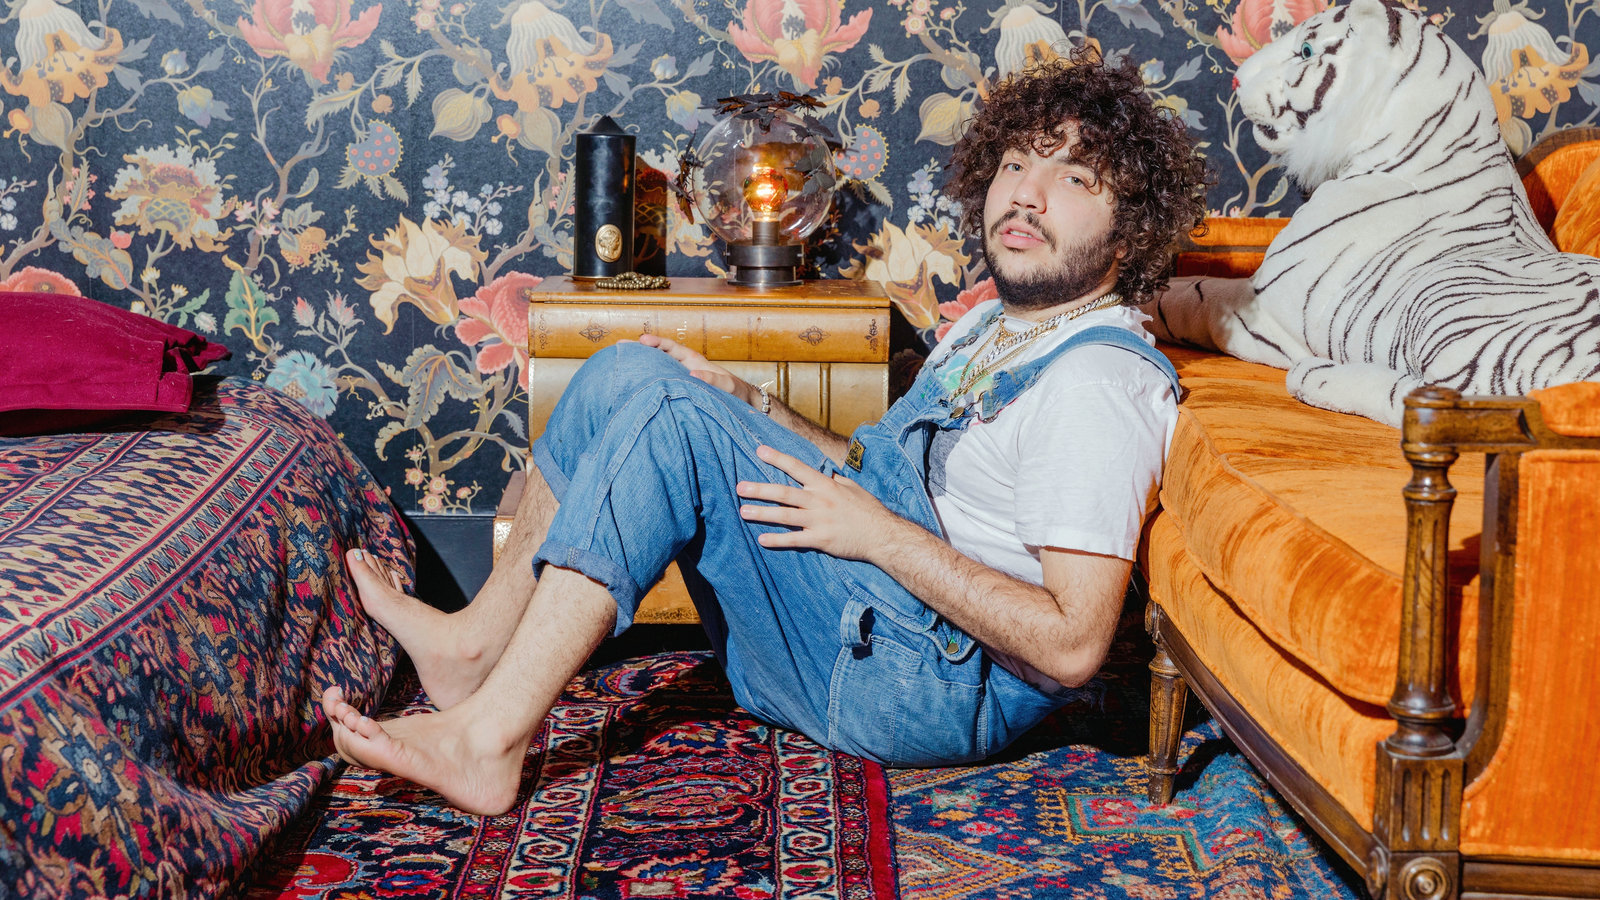 Benny Blanco Net Worth and Sources of Income